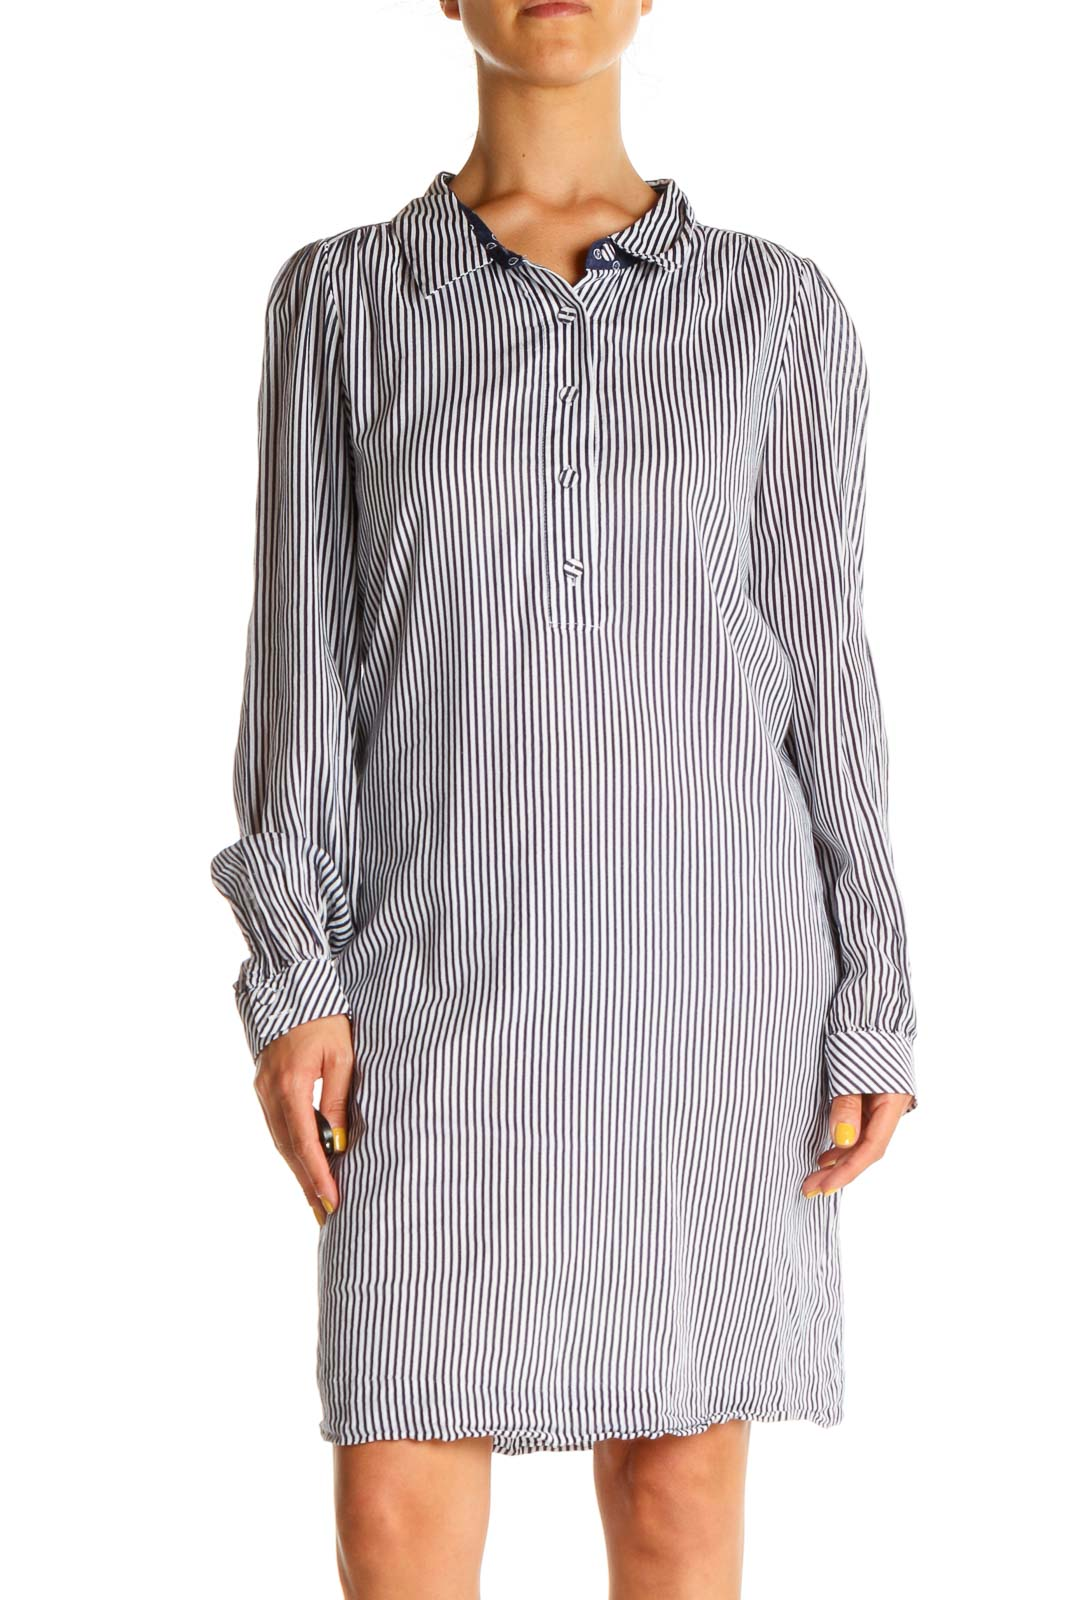 White Blue Striped Day Shirt Dress Front